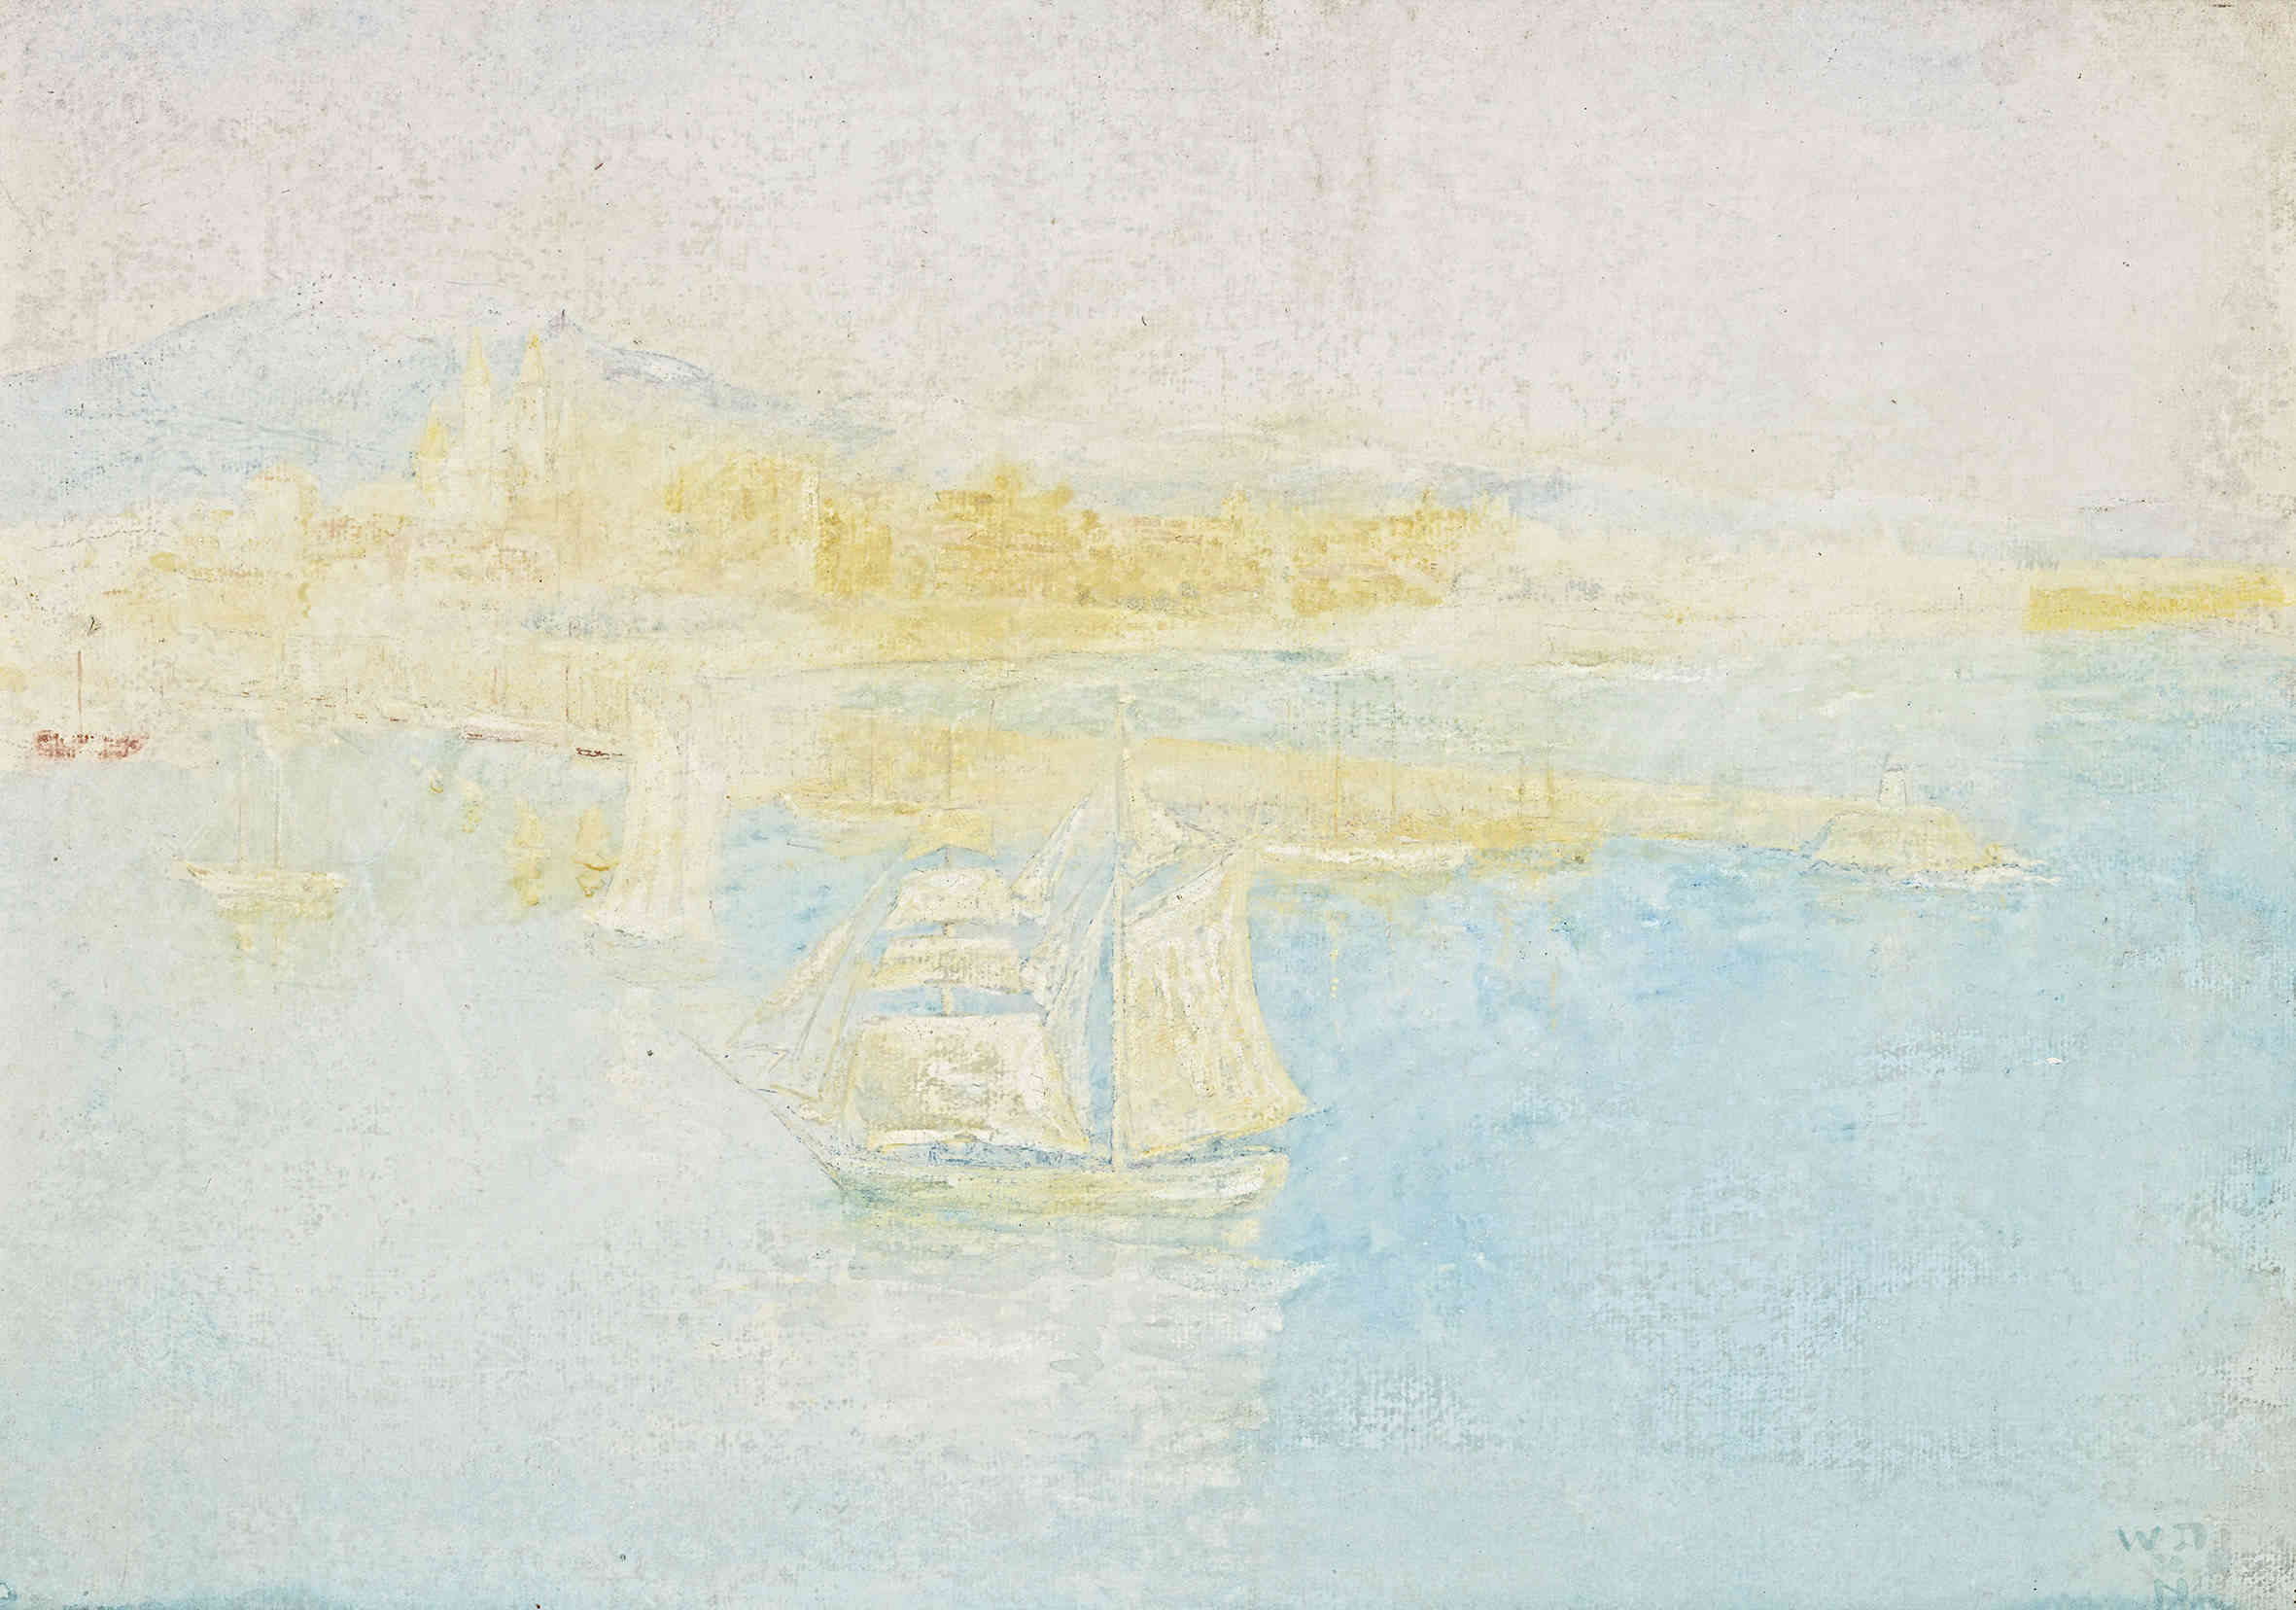 Le port de Palma William Degouve de Nuncques (1867-1935) - Kunsthandel Studio 2000